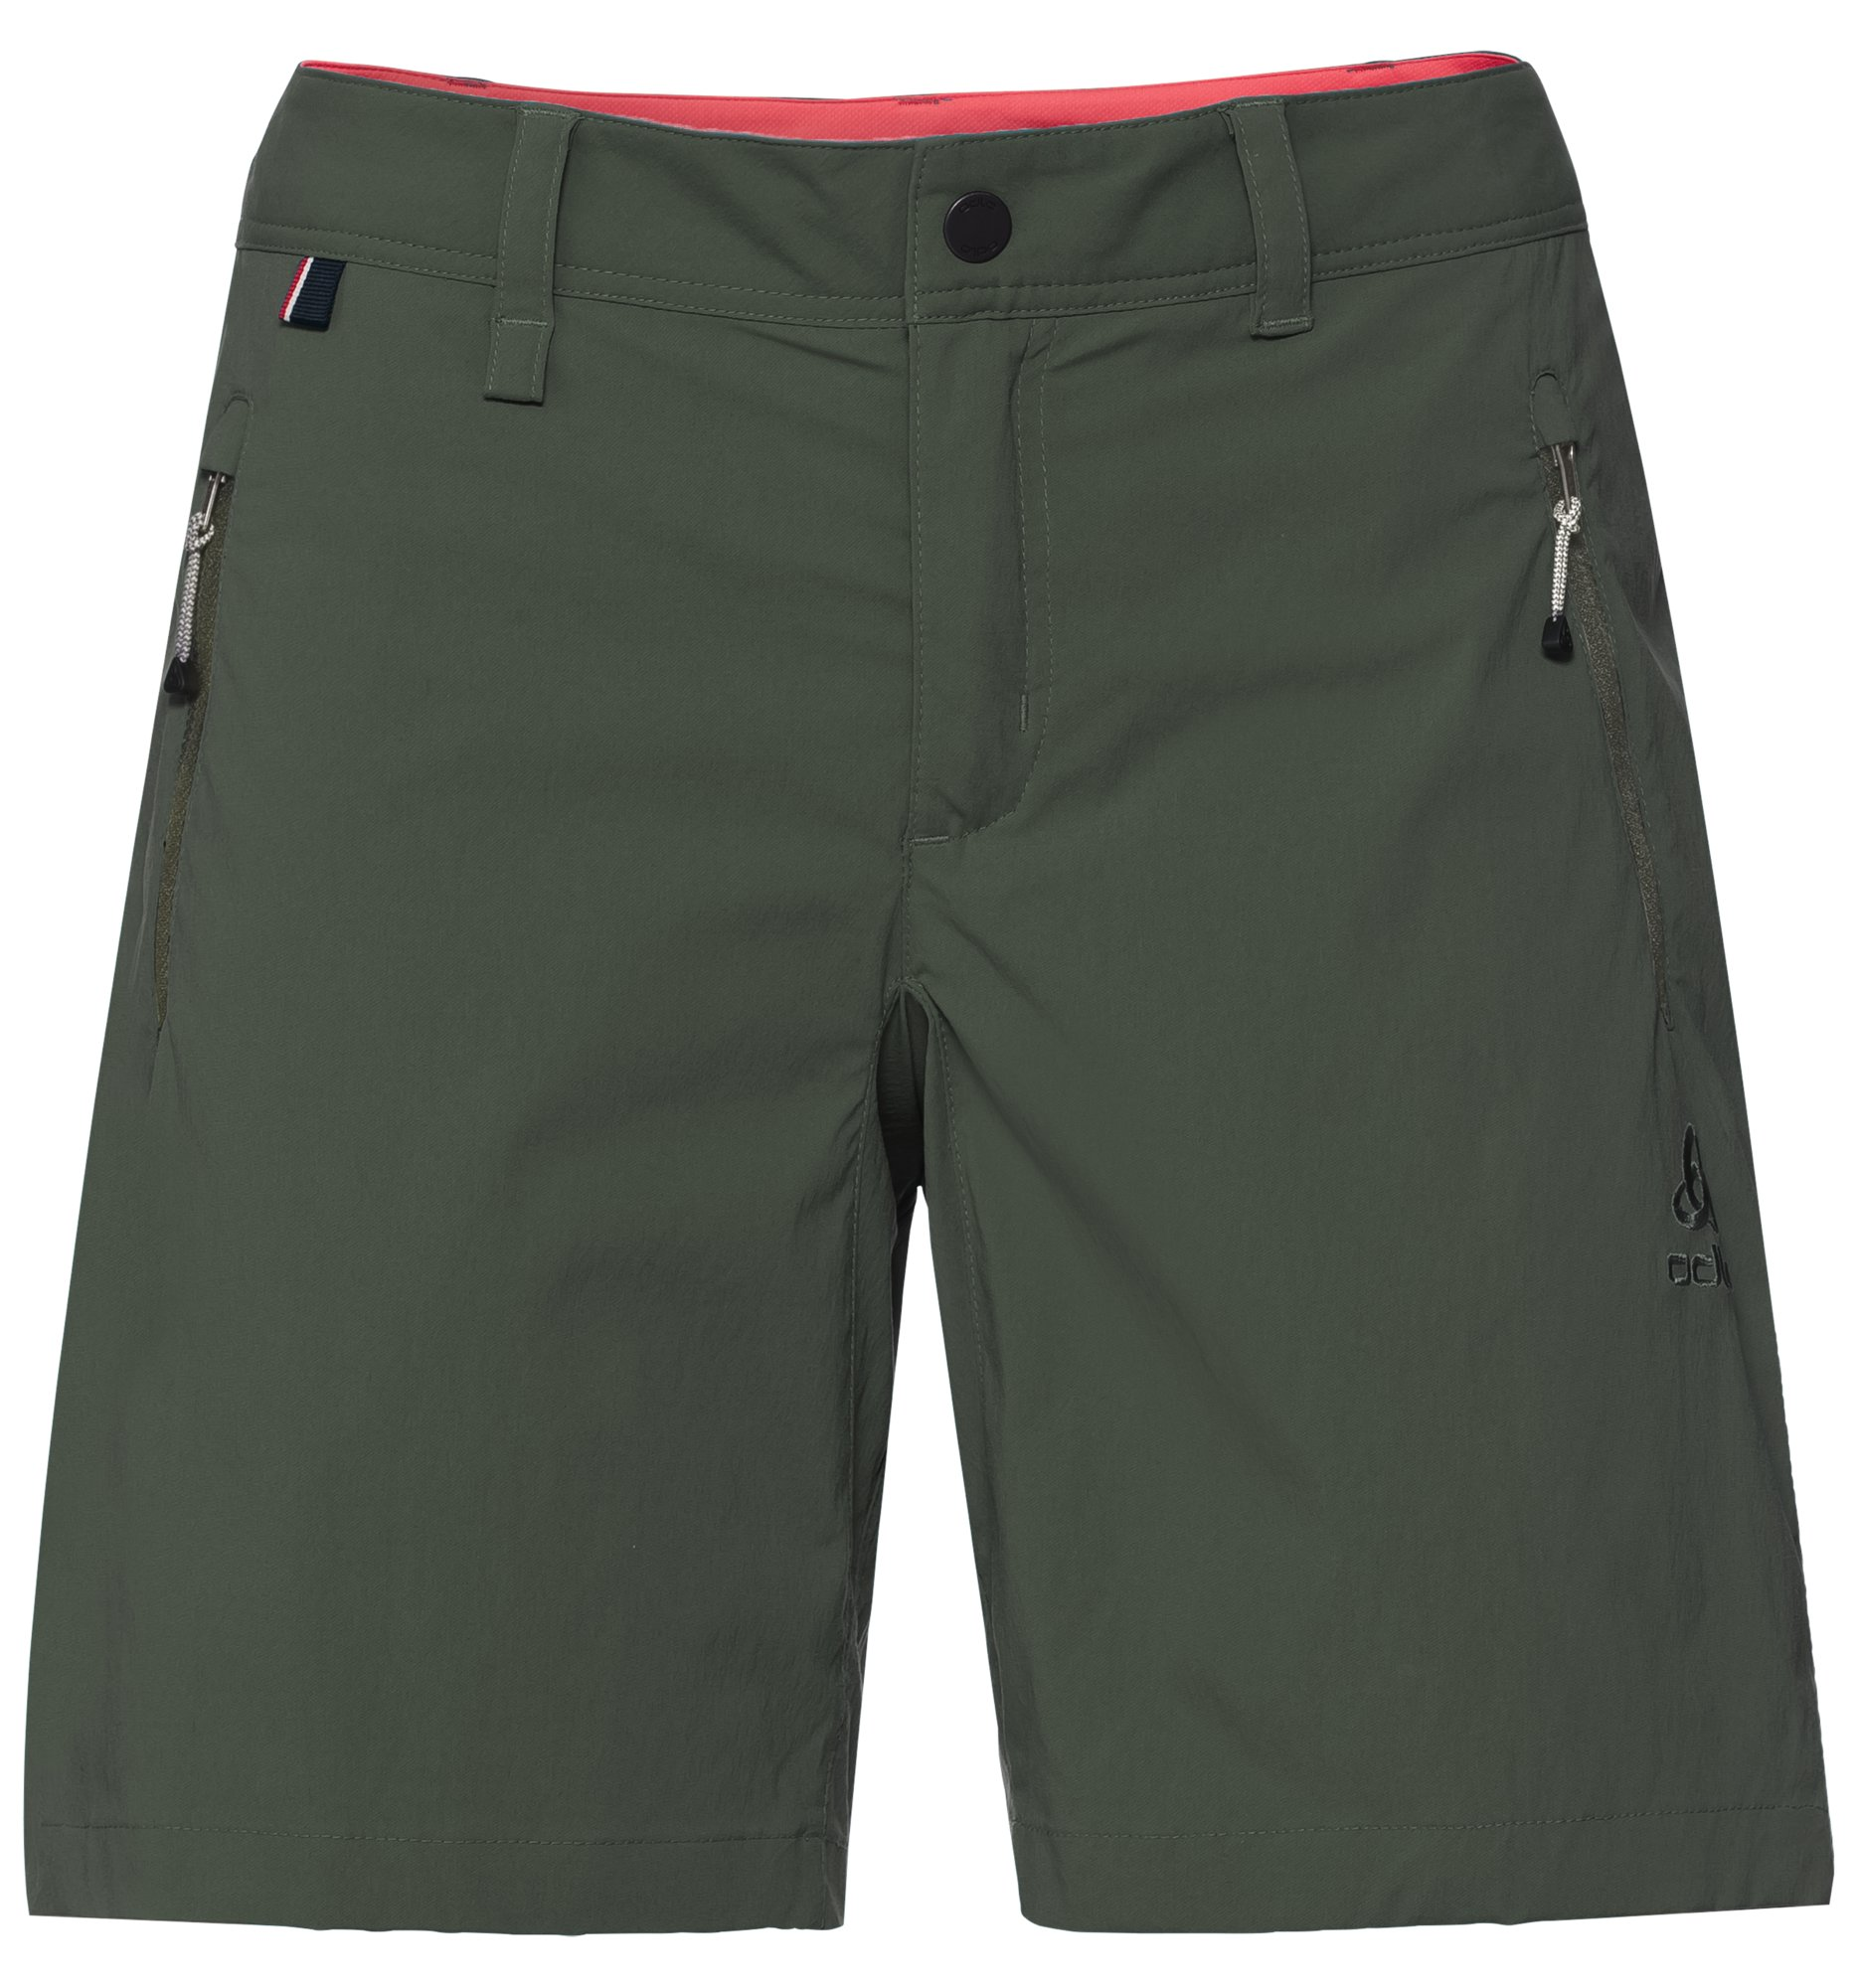 Gibb Outdoors - Odlo - Wedgemoun Shorts